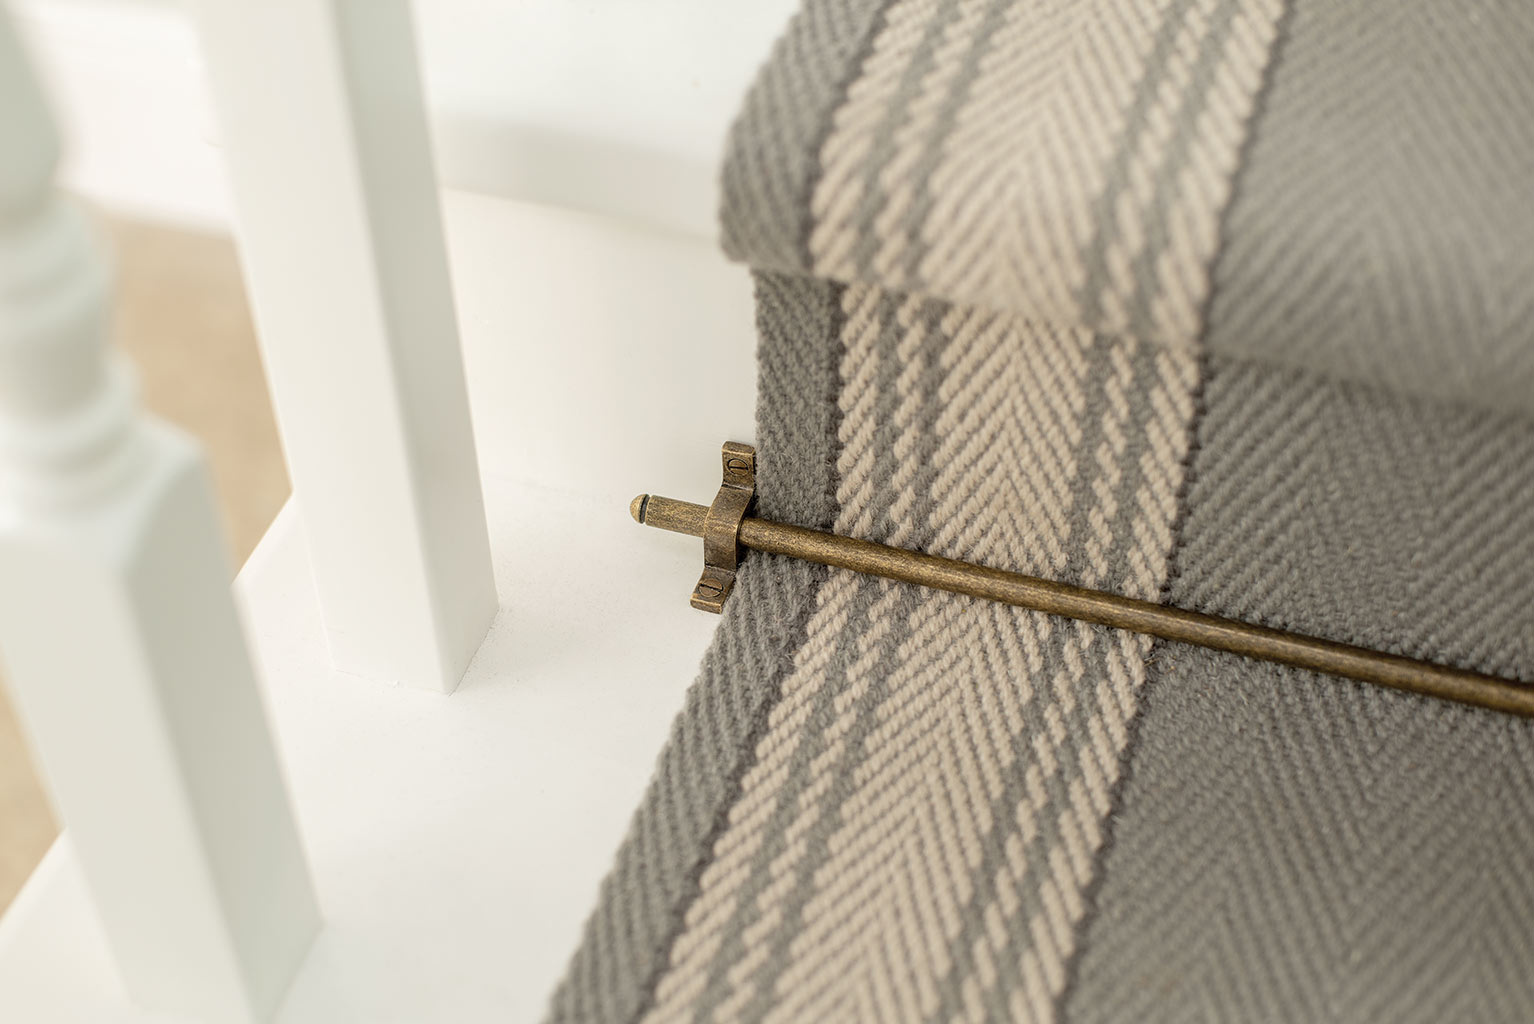 Turned Stair Rods in Antiqued Brass